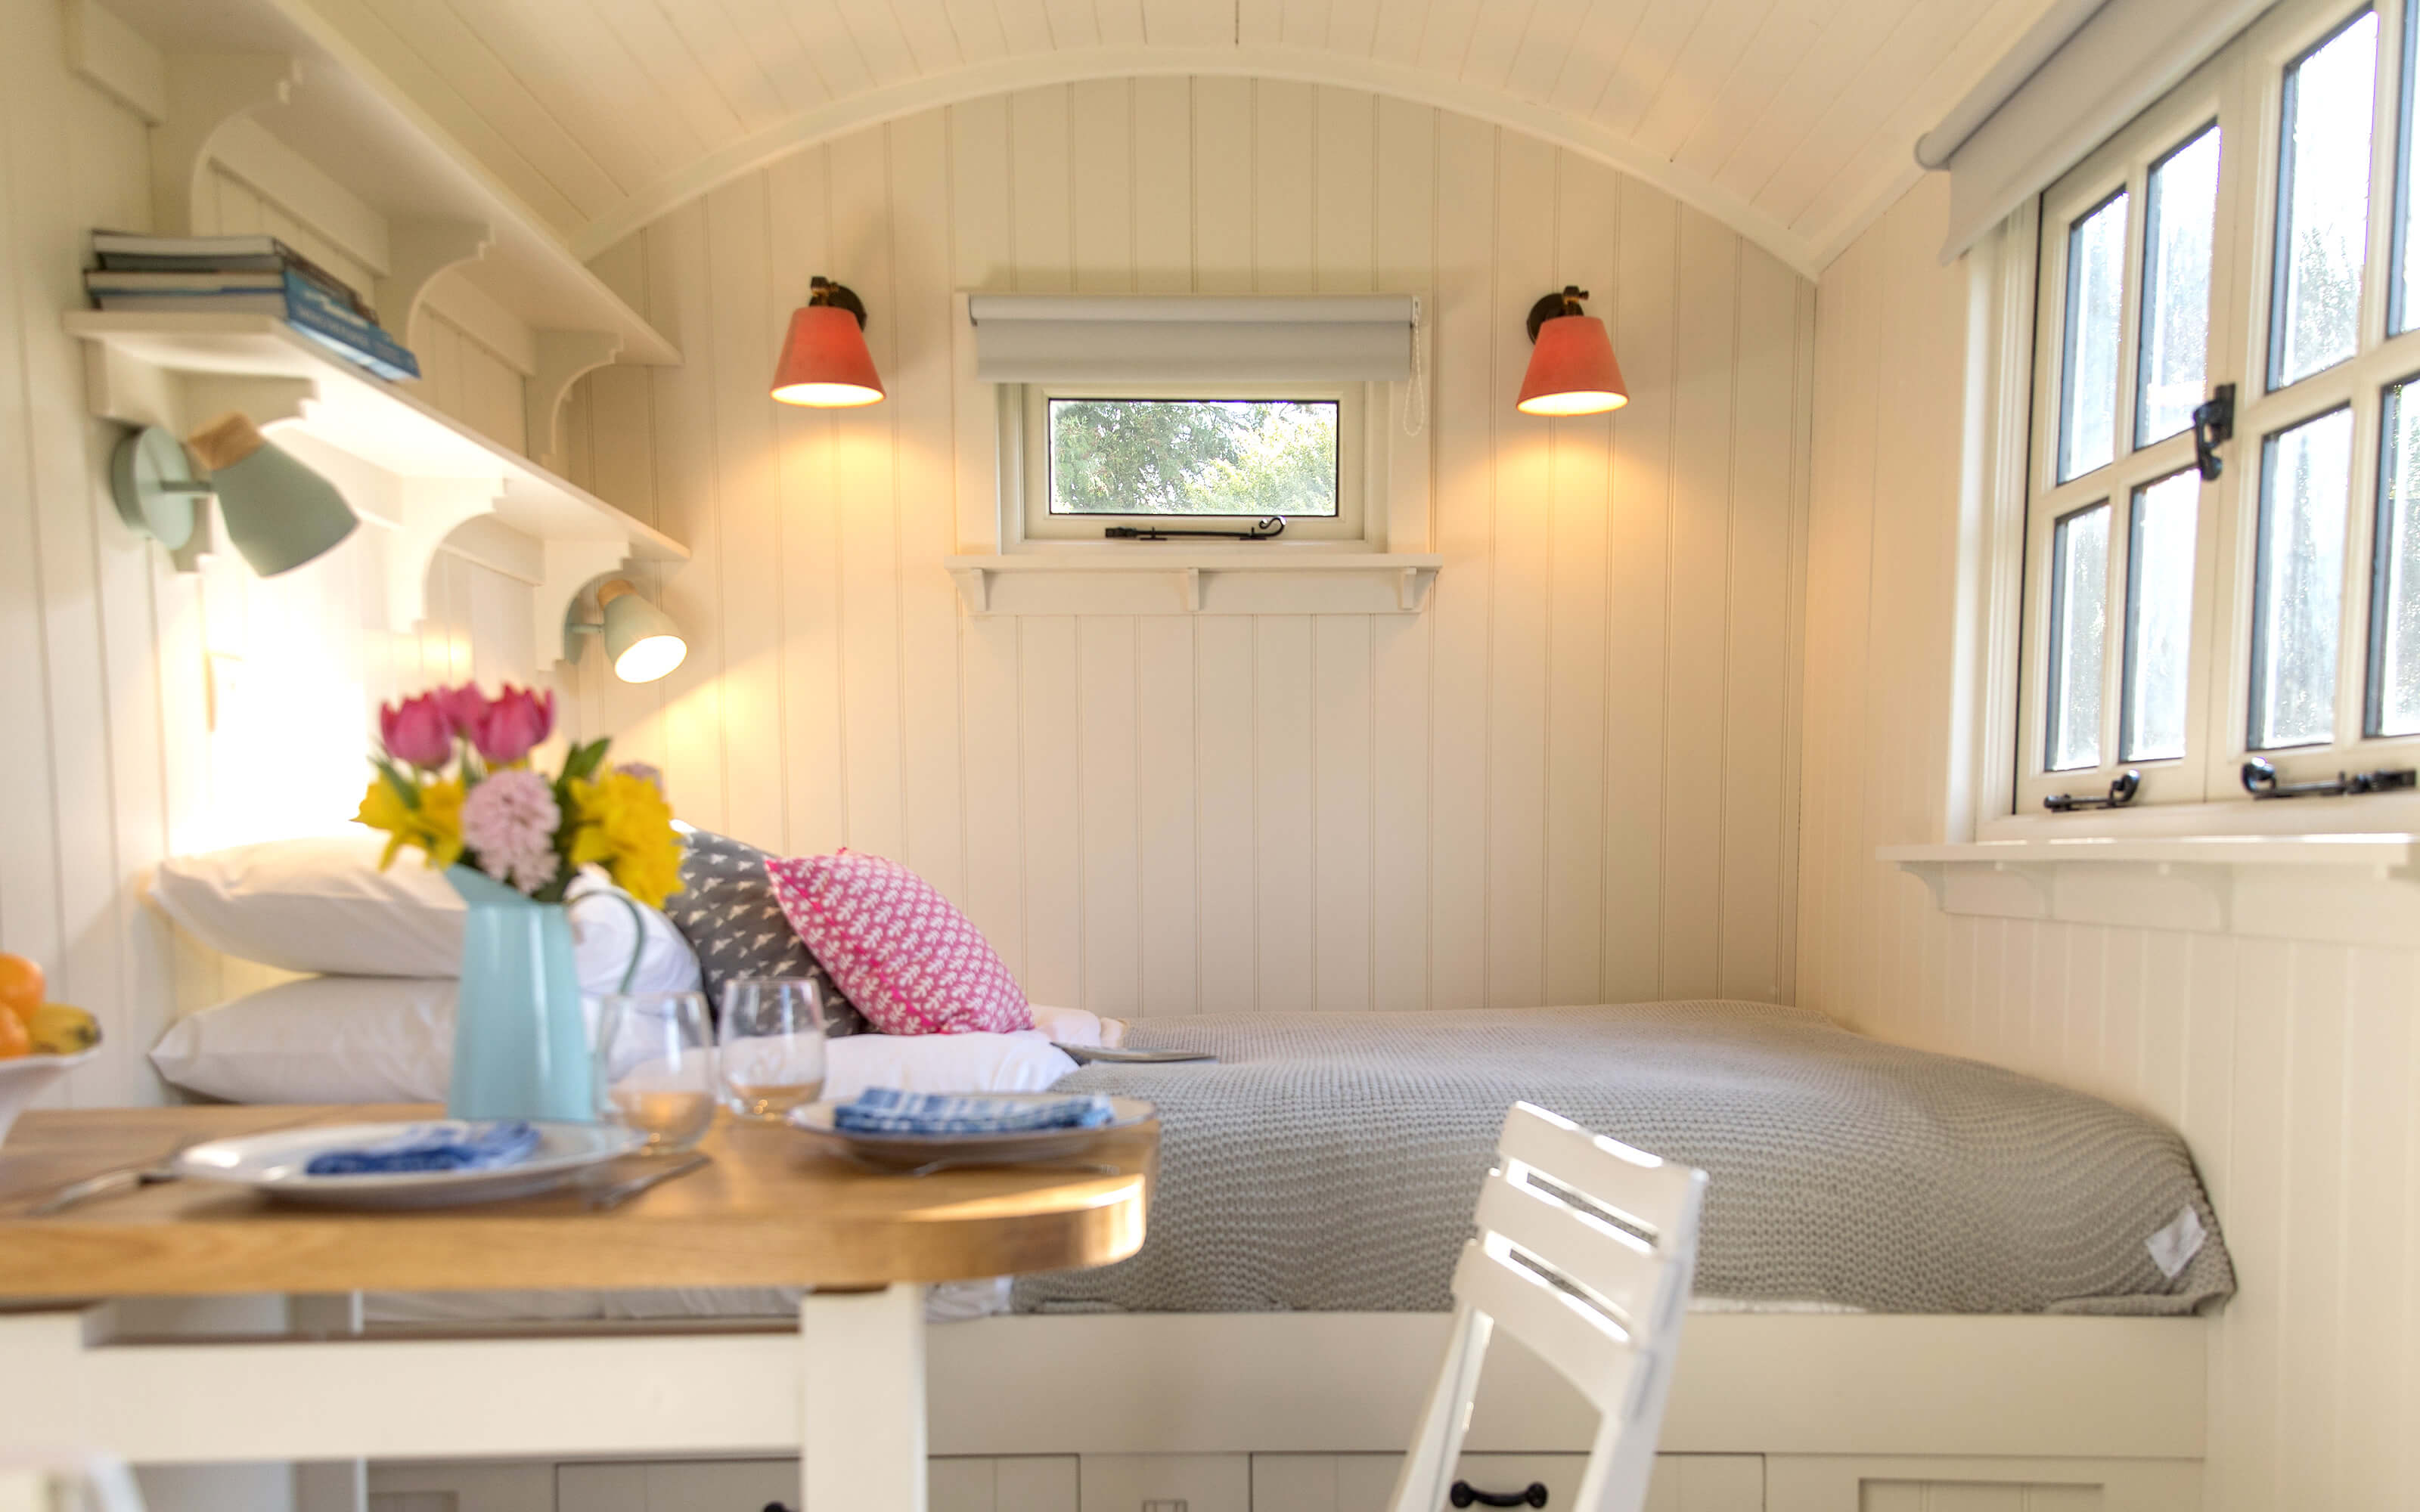 The king sized bed inside a shepherds hut.